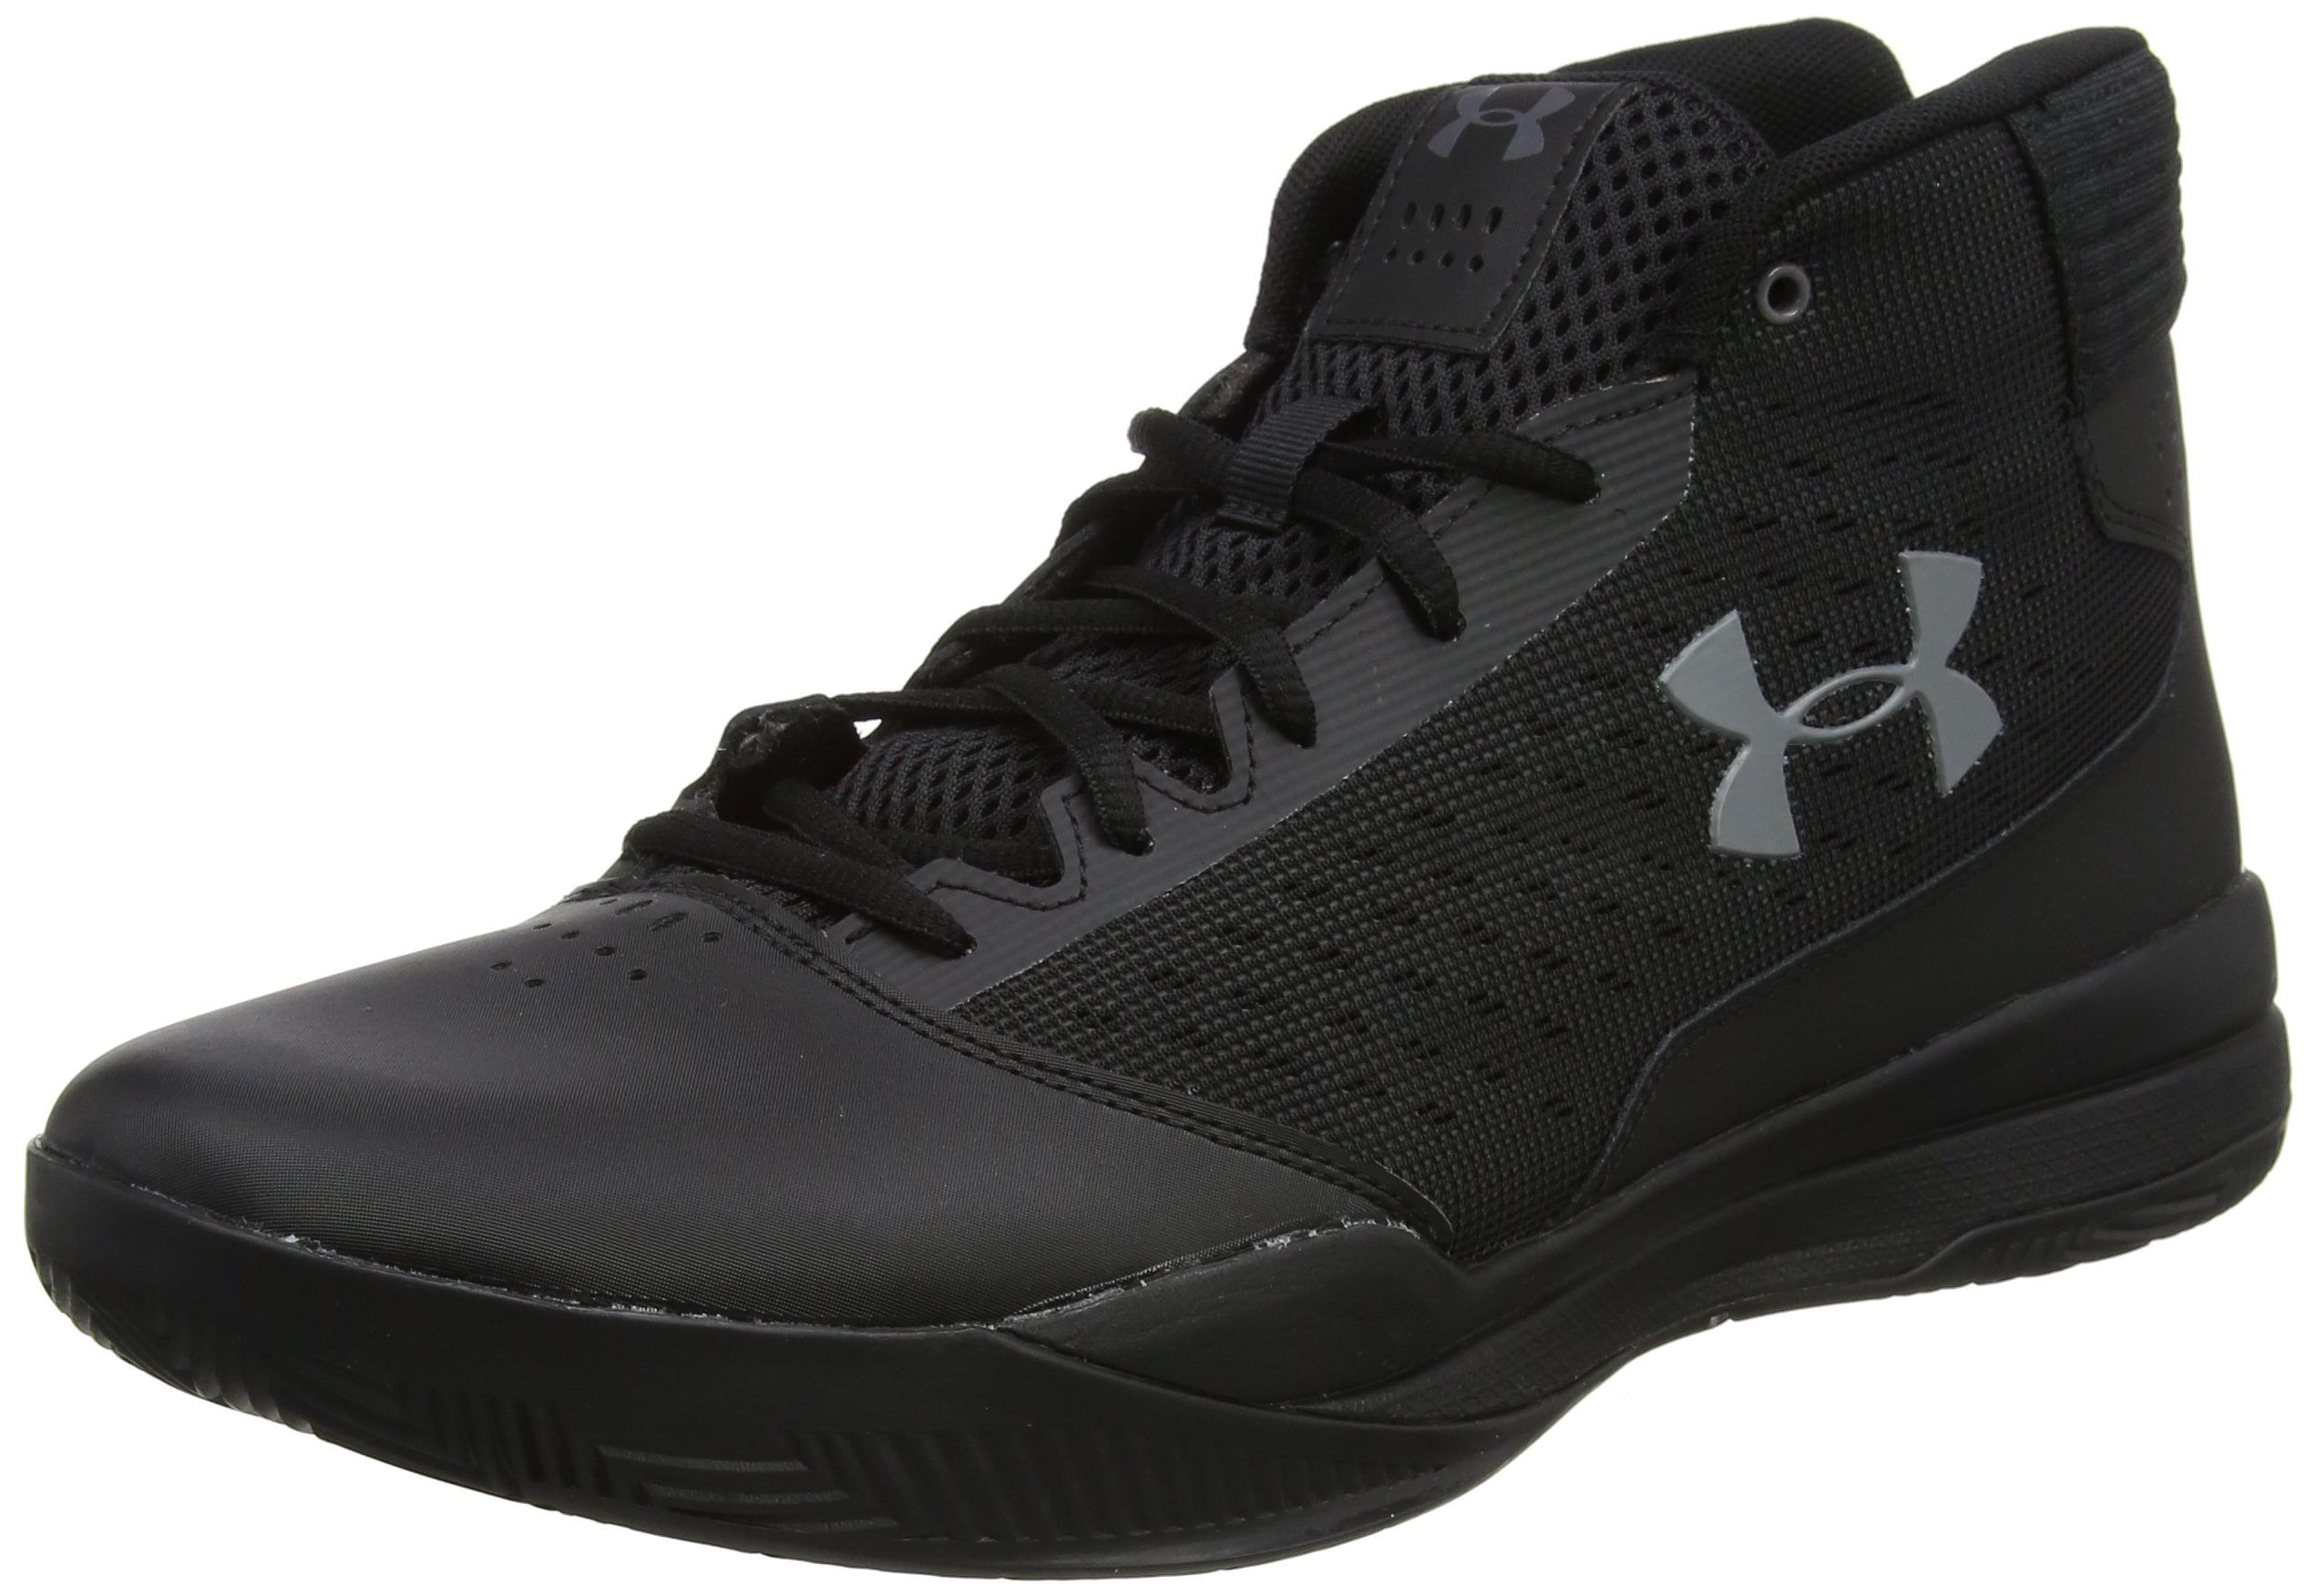 Under Armour Men's Jet 2017 Basketball Shoe, Black, 14